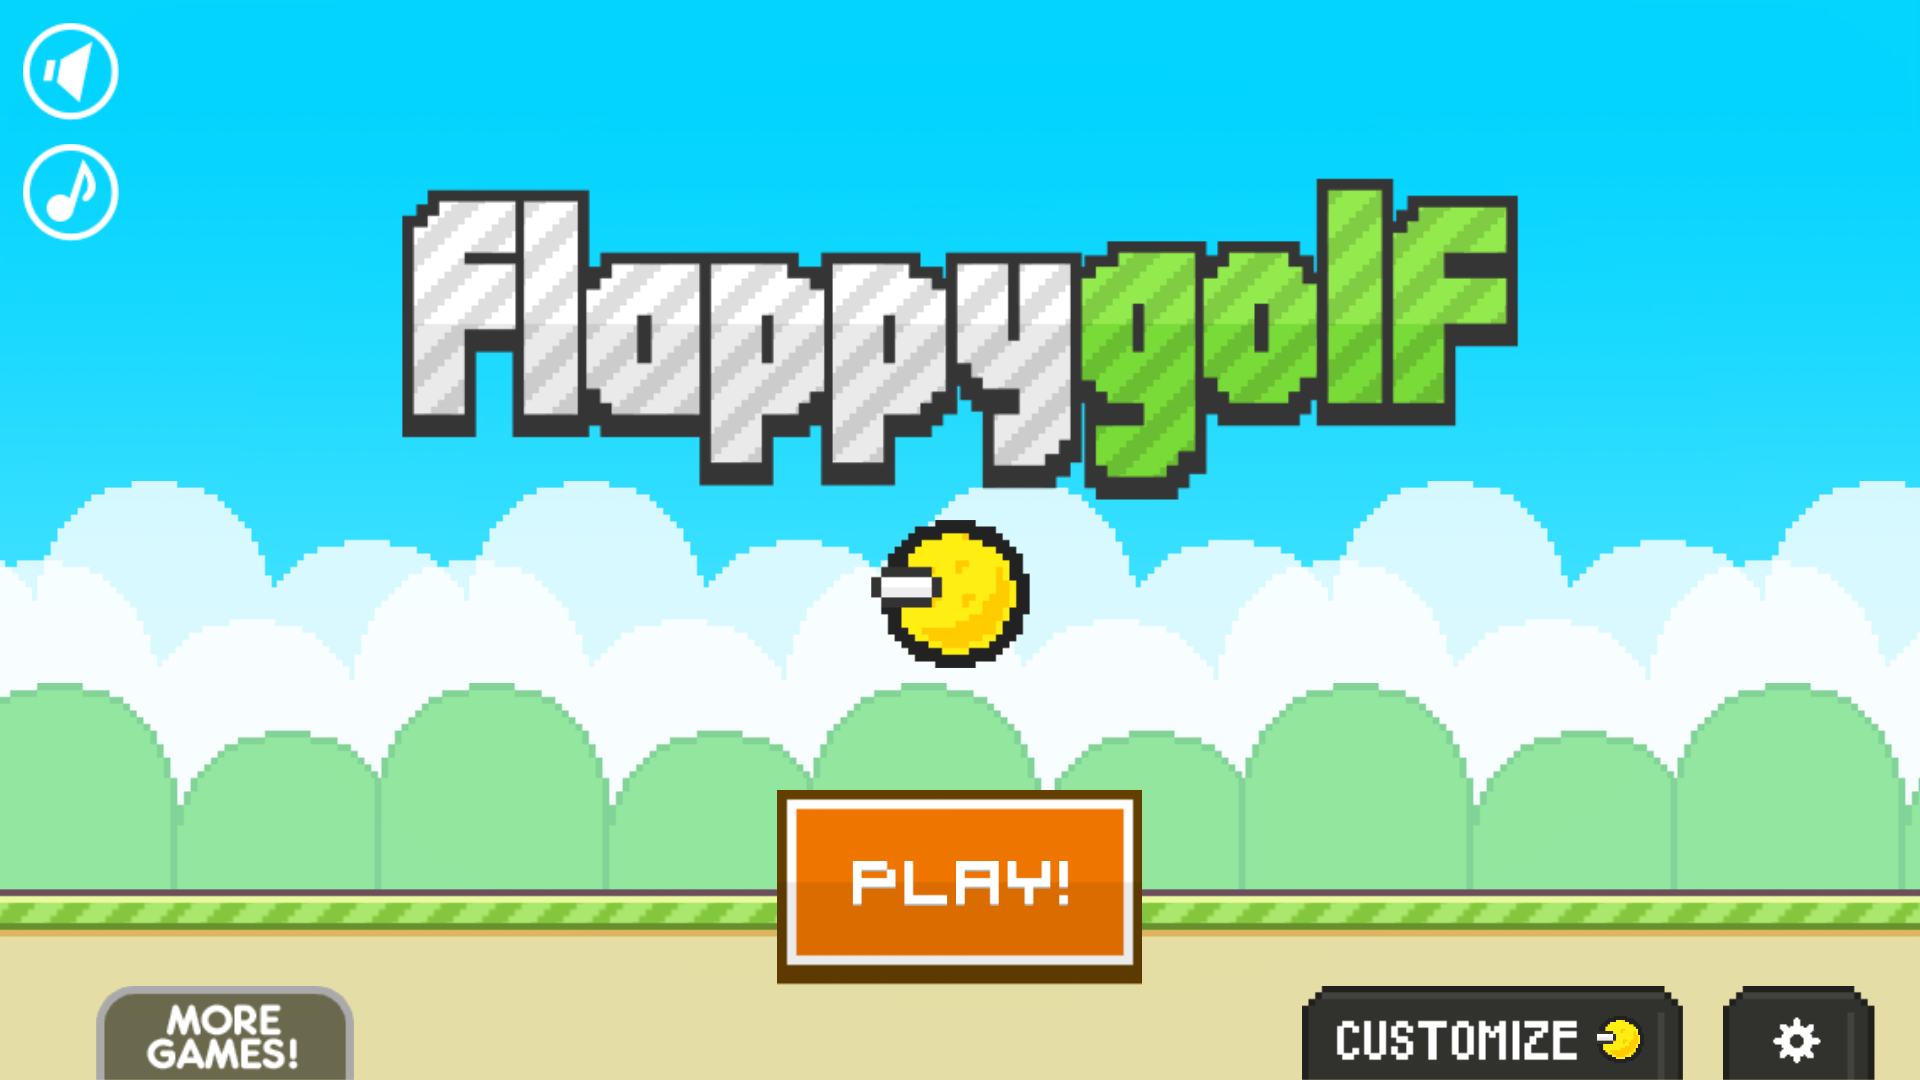 Flappy Golf image #1